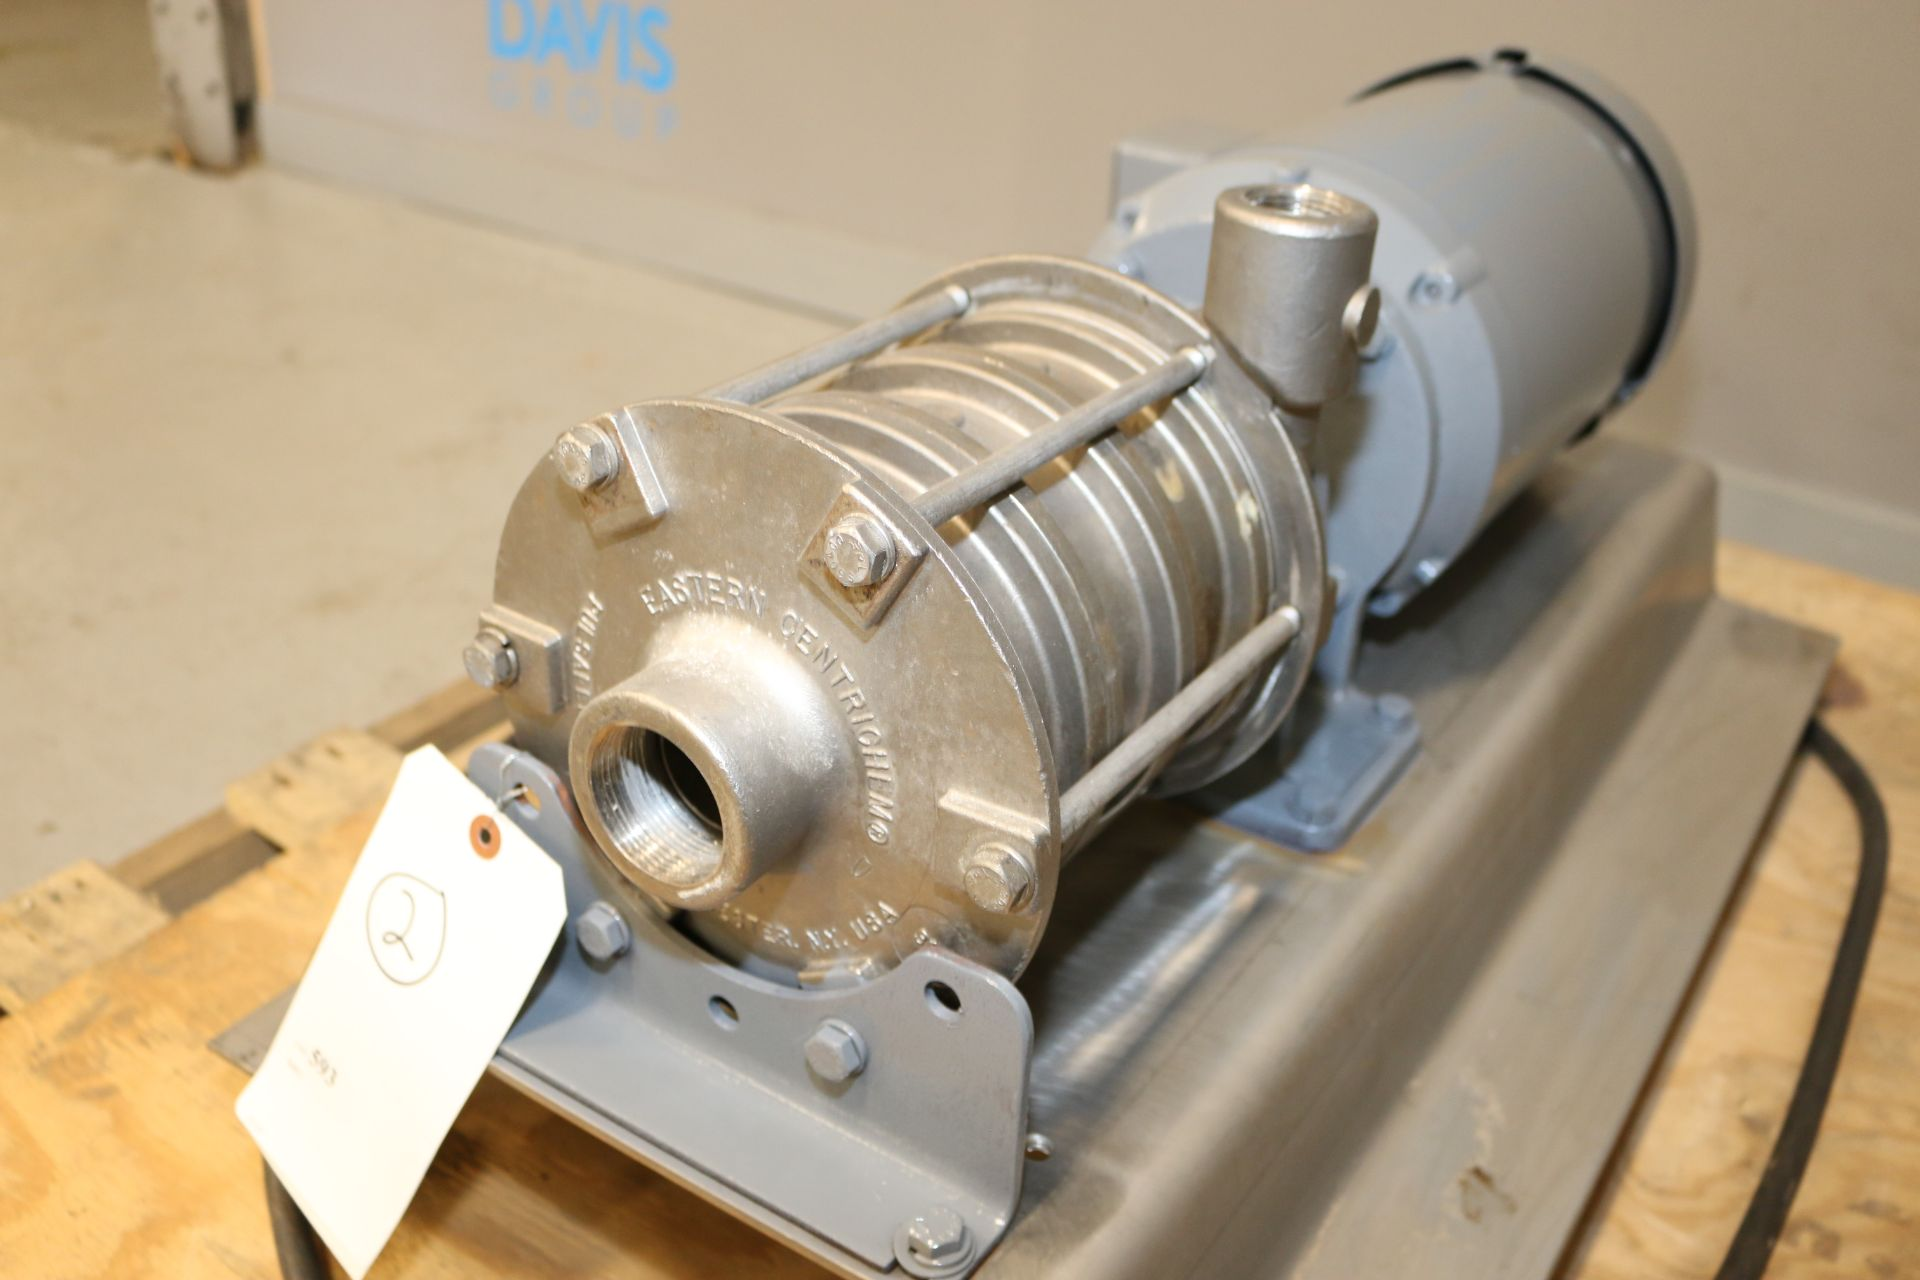 Lot 33 - Eastern Centrichem 5 hp Pump, M/N ECH4-ASKFENSS, with Thread Type Inlet/Outlet, with Baldor 3450 RPM